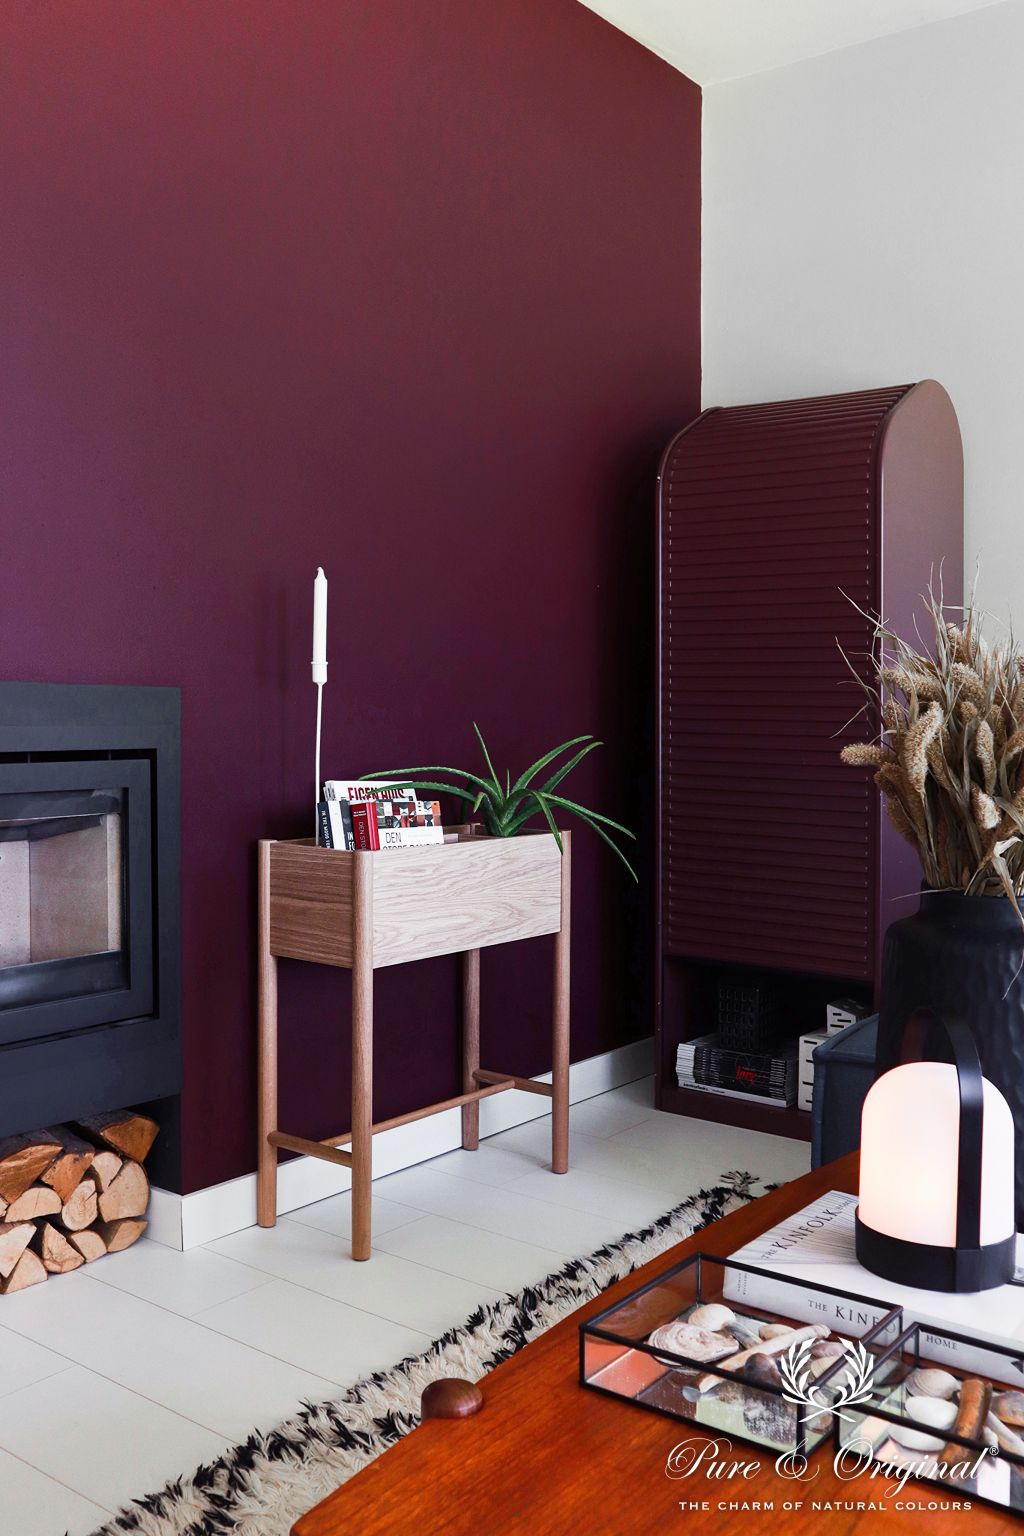 Purple wall living room magazine stand